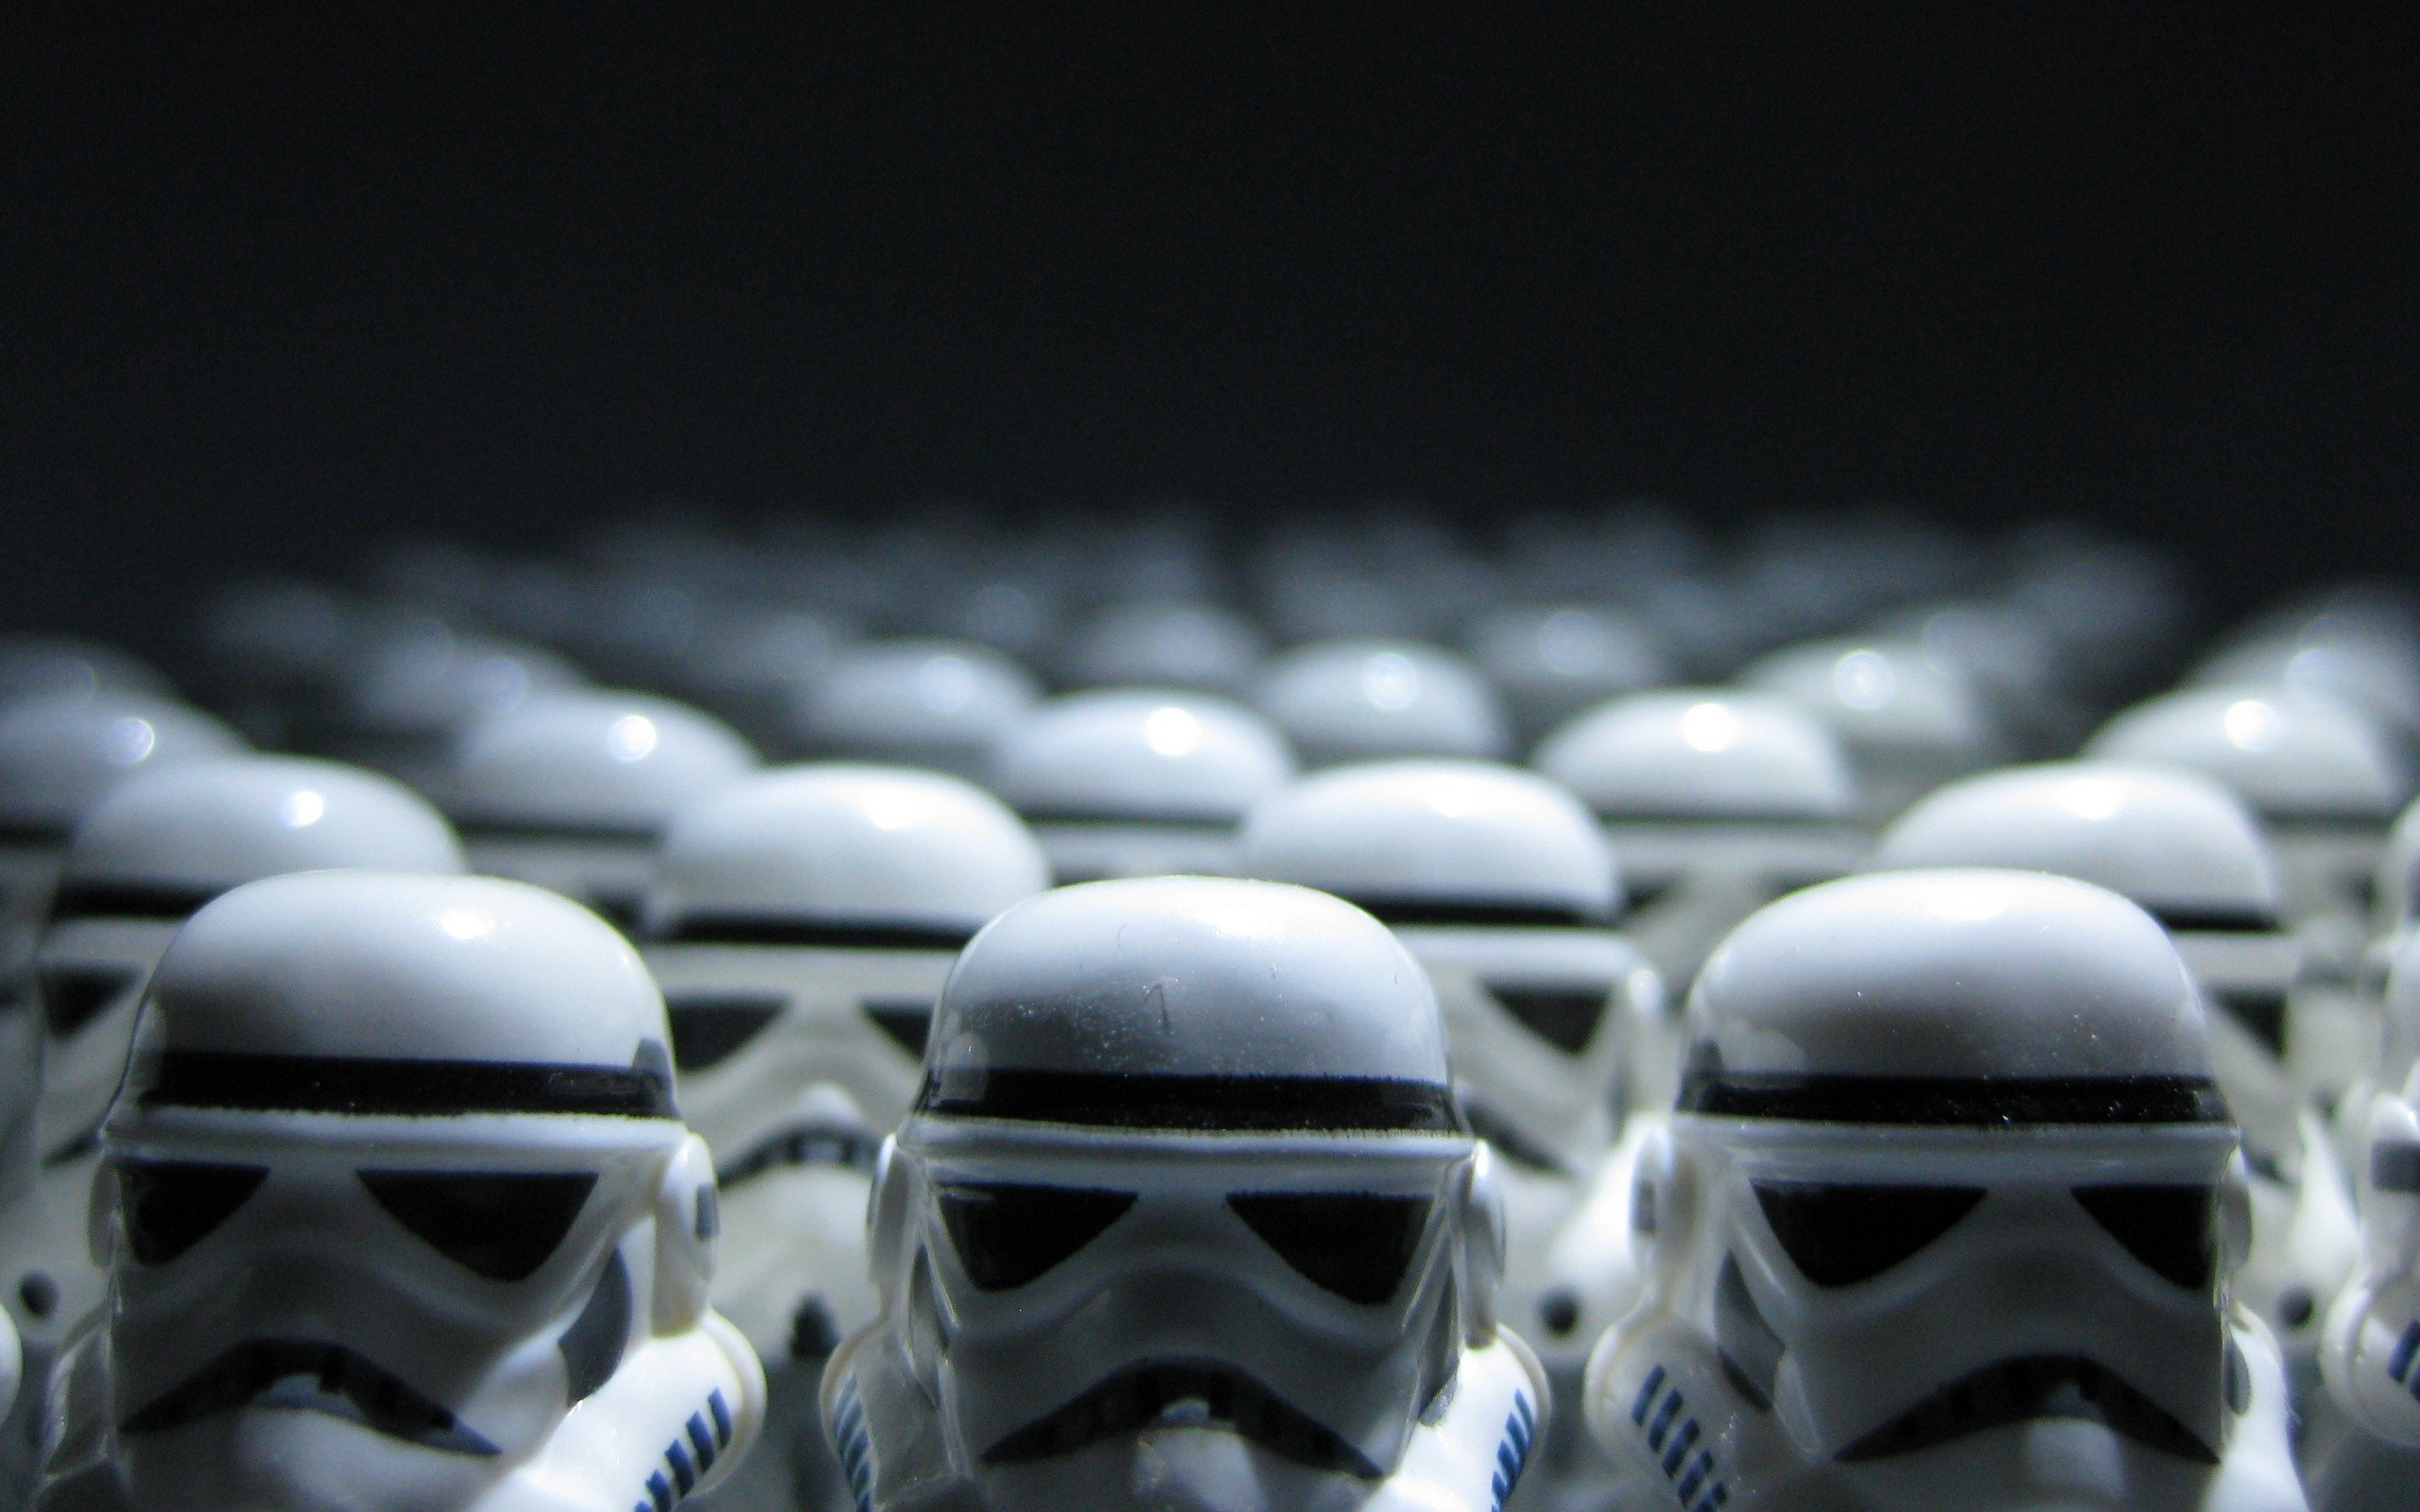 Res: 2560x1600, Bild: Lego Starwars Stormtrooper wallpapers and stock photos. Â«